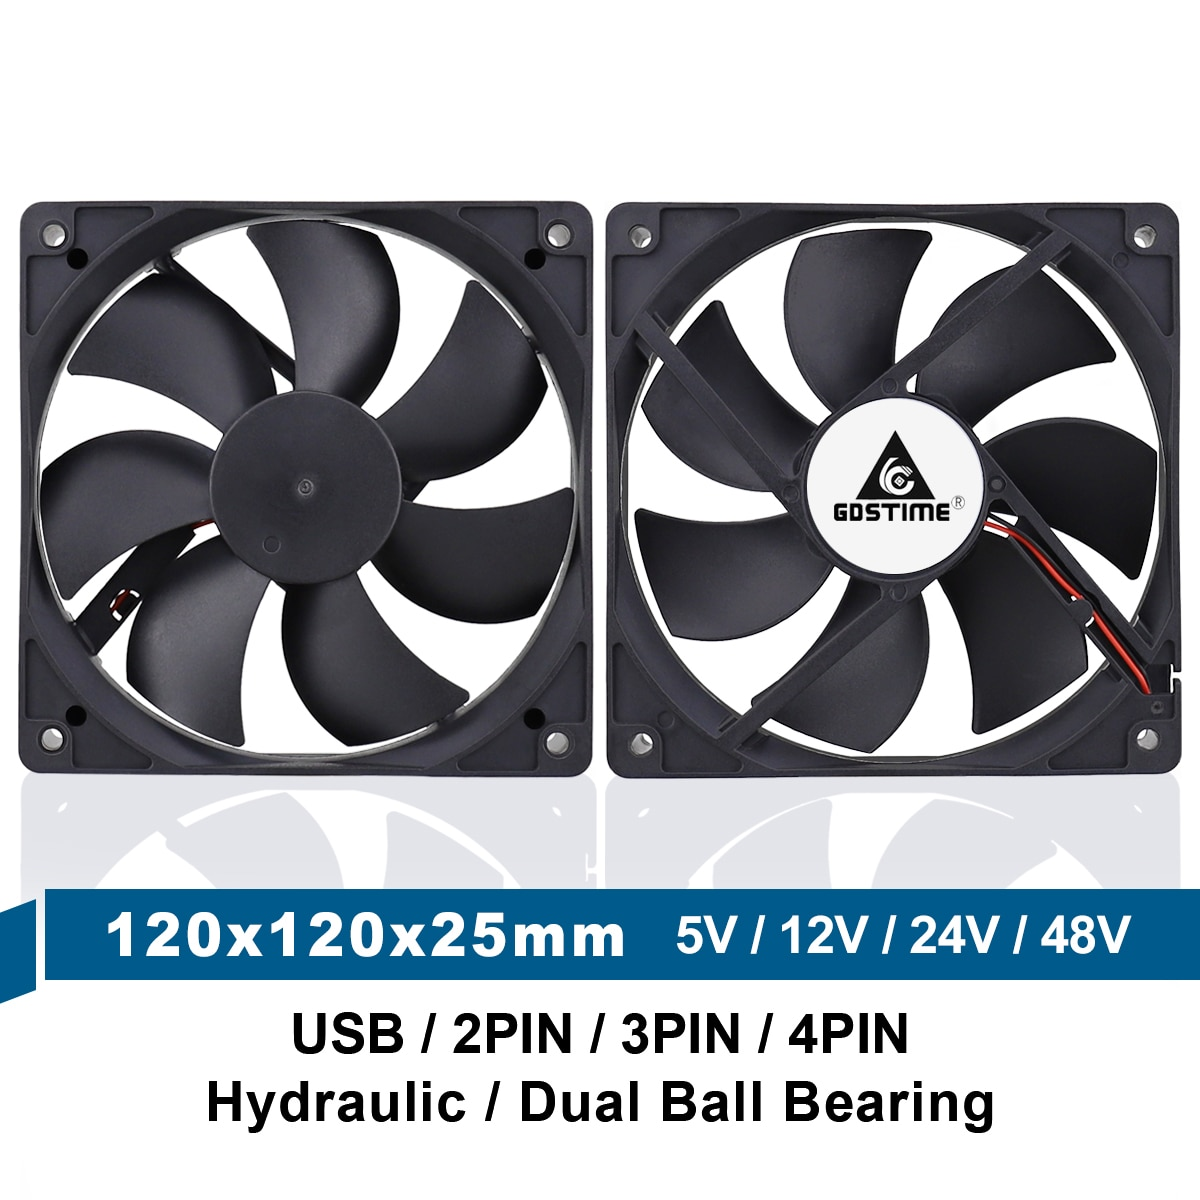 Фото - 5V 12V 24V 48V 120mm 12025 Sleeve/Ball Cooling Fan 120x120x25mm FG PWM USB 2PIN 3PIN 4PIN DC Cooler Fan for PC Computer Case coolmoon rgb controller 4pin pwm 5v 3pin argb cooling fan smart intelligent remote control for pc case chassis